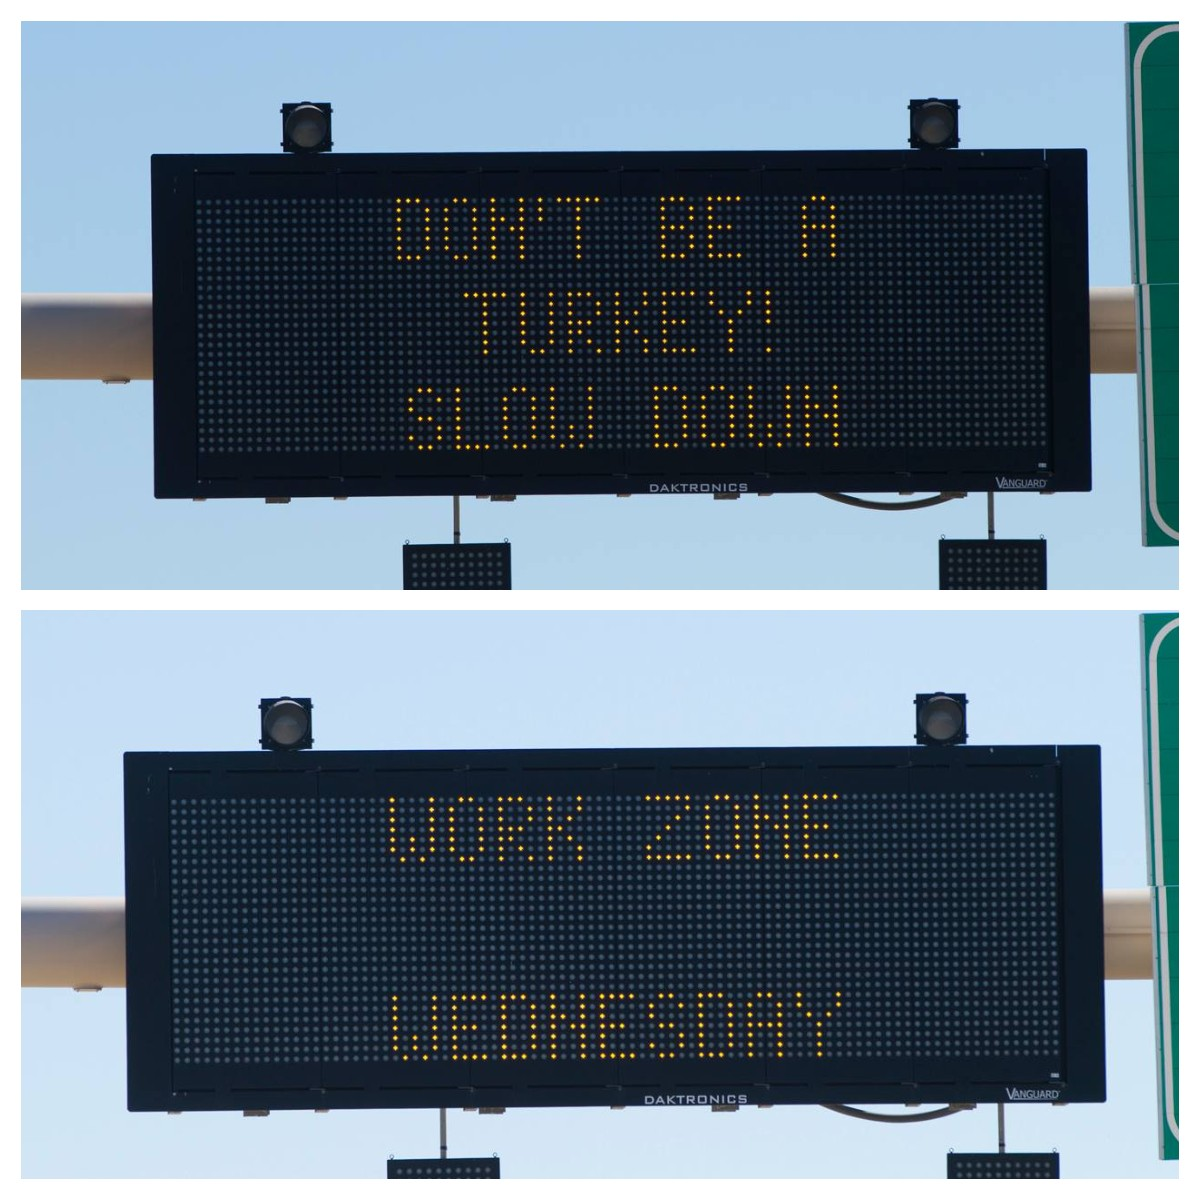 /content/dam/ok/en/odot/images/message-signs/11.23.16.jpg